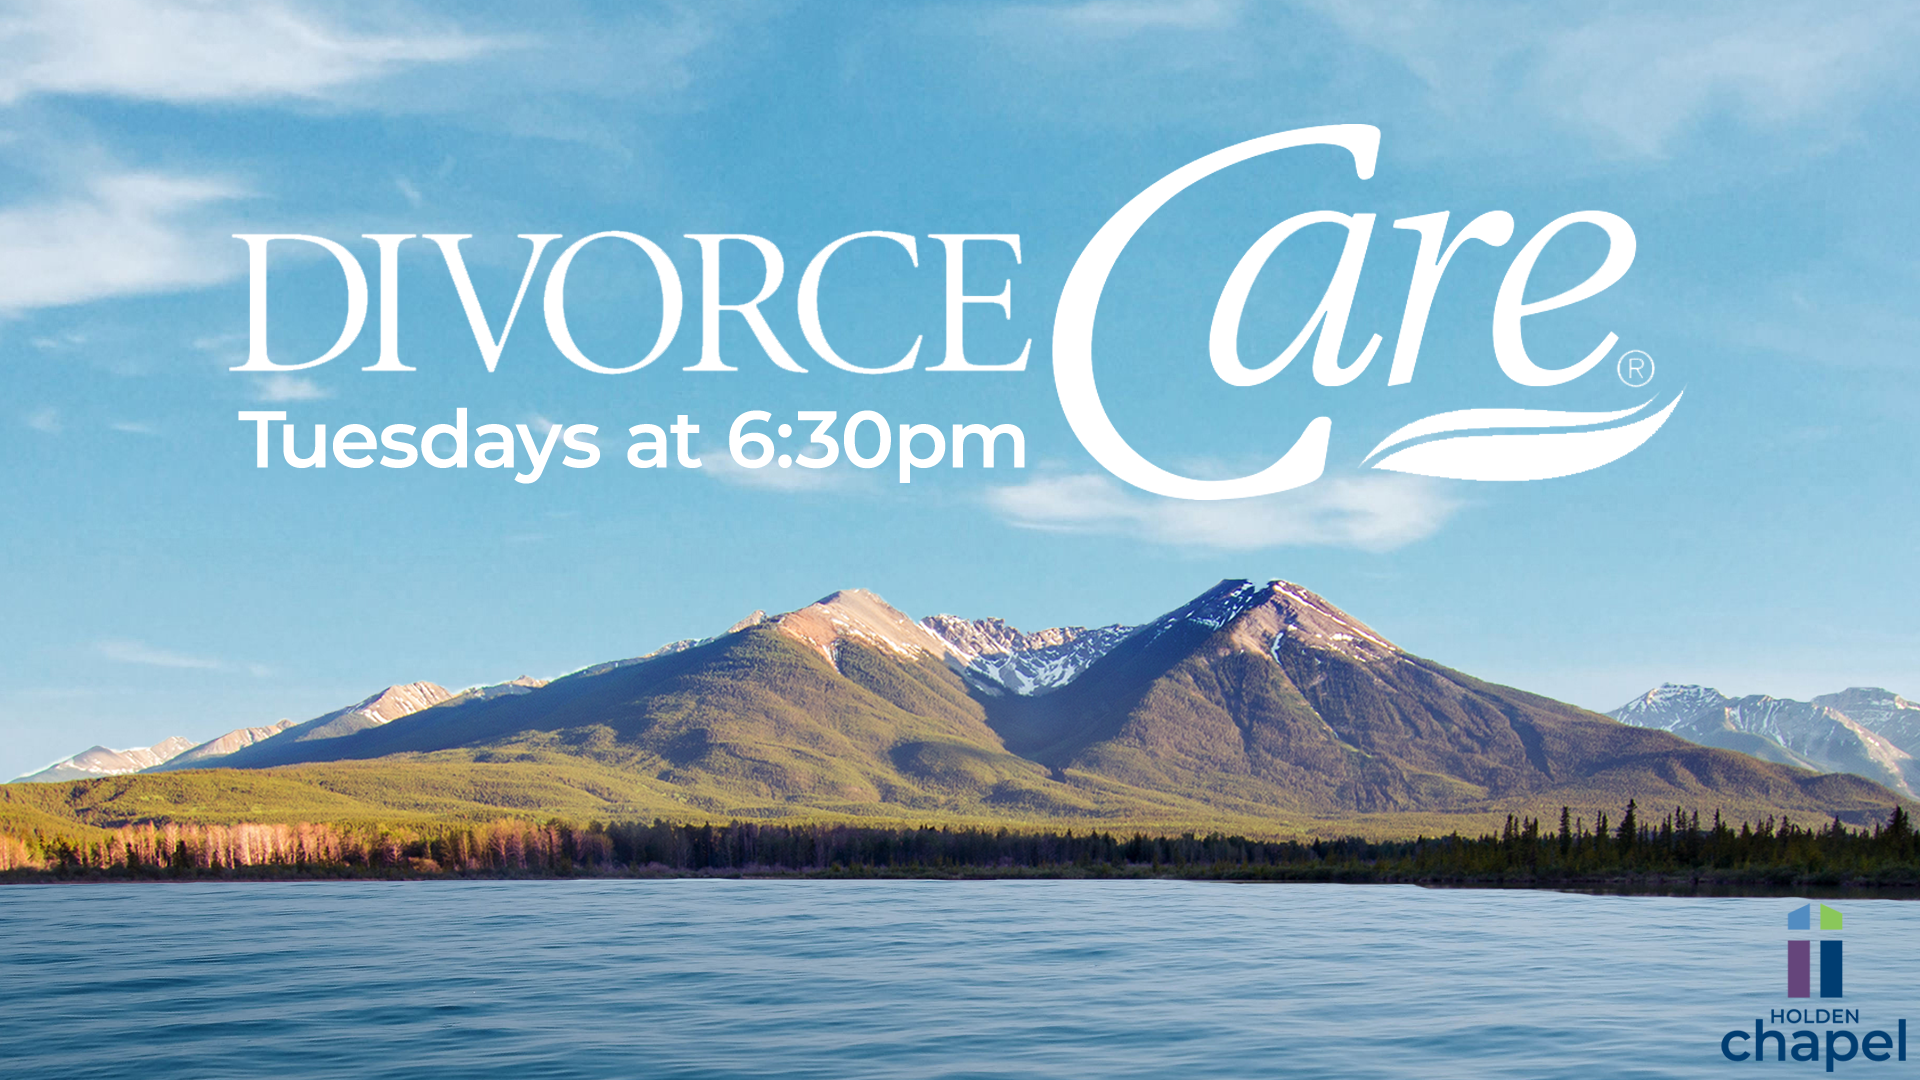 Divorce Care image